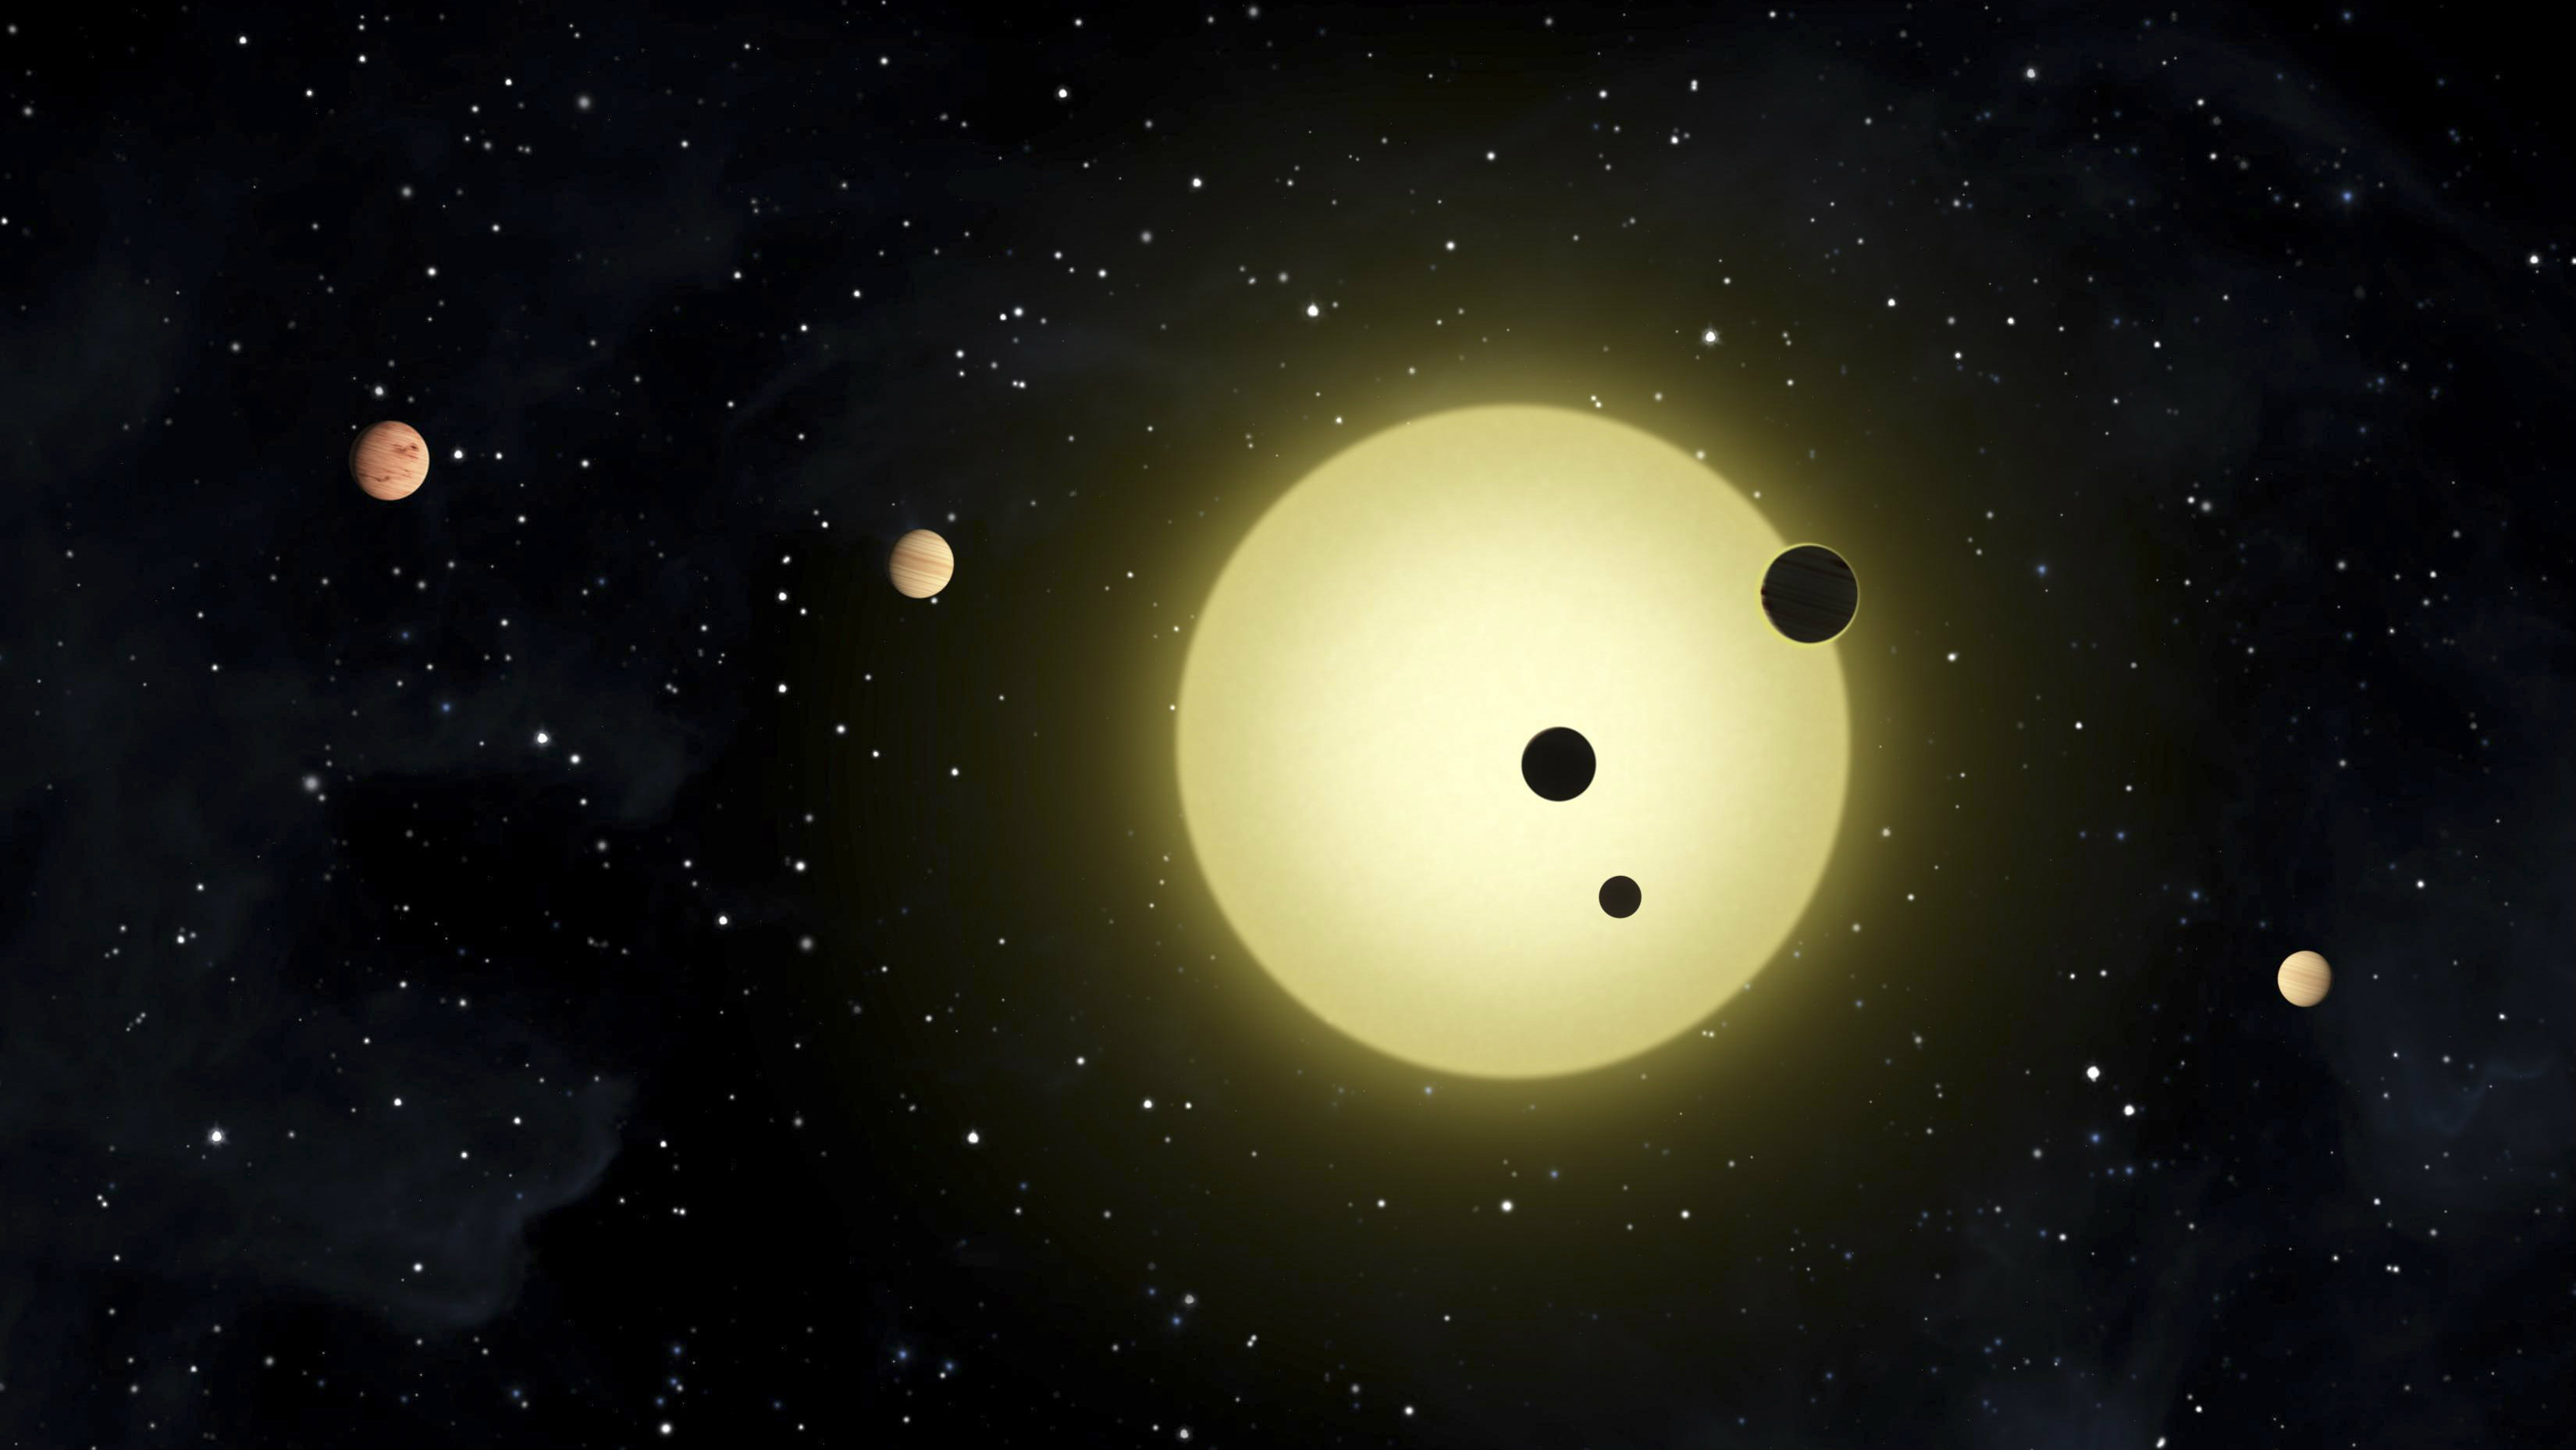 In this artist's conception released by NASA February 2, 2011, Kepler-11 is a sun-like star around which six planets orbit. At times, two or more planets pass in front of the star at once, as shown in a simultaneous transit of three planets observed by NASA's Kepler spacecraft on August 26, 2010. REUTERS/Tim Pyle/NASA/Handout (UNITED STATES - Tags: SCI TECH) FOR EDITORIAL USE ONLY. NOT FOR SALE FOR MARKETING OR ADVERTISING CAMPAIGNS. THIS IMAGE HAS BEEN SUPPLIED BY A THIRD PARTY. IT IS DISTRIBUTED, EXACTLY AS RECEIVED BY REUTERS, AS A SERVICE TO CLIENTS